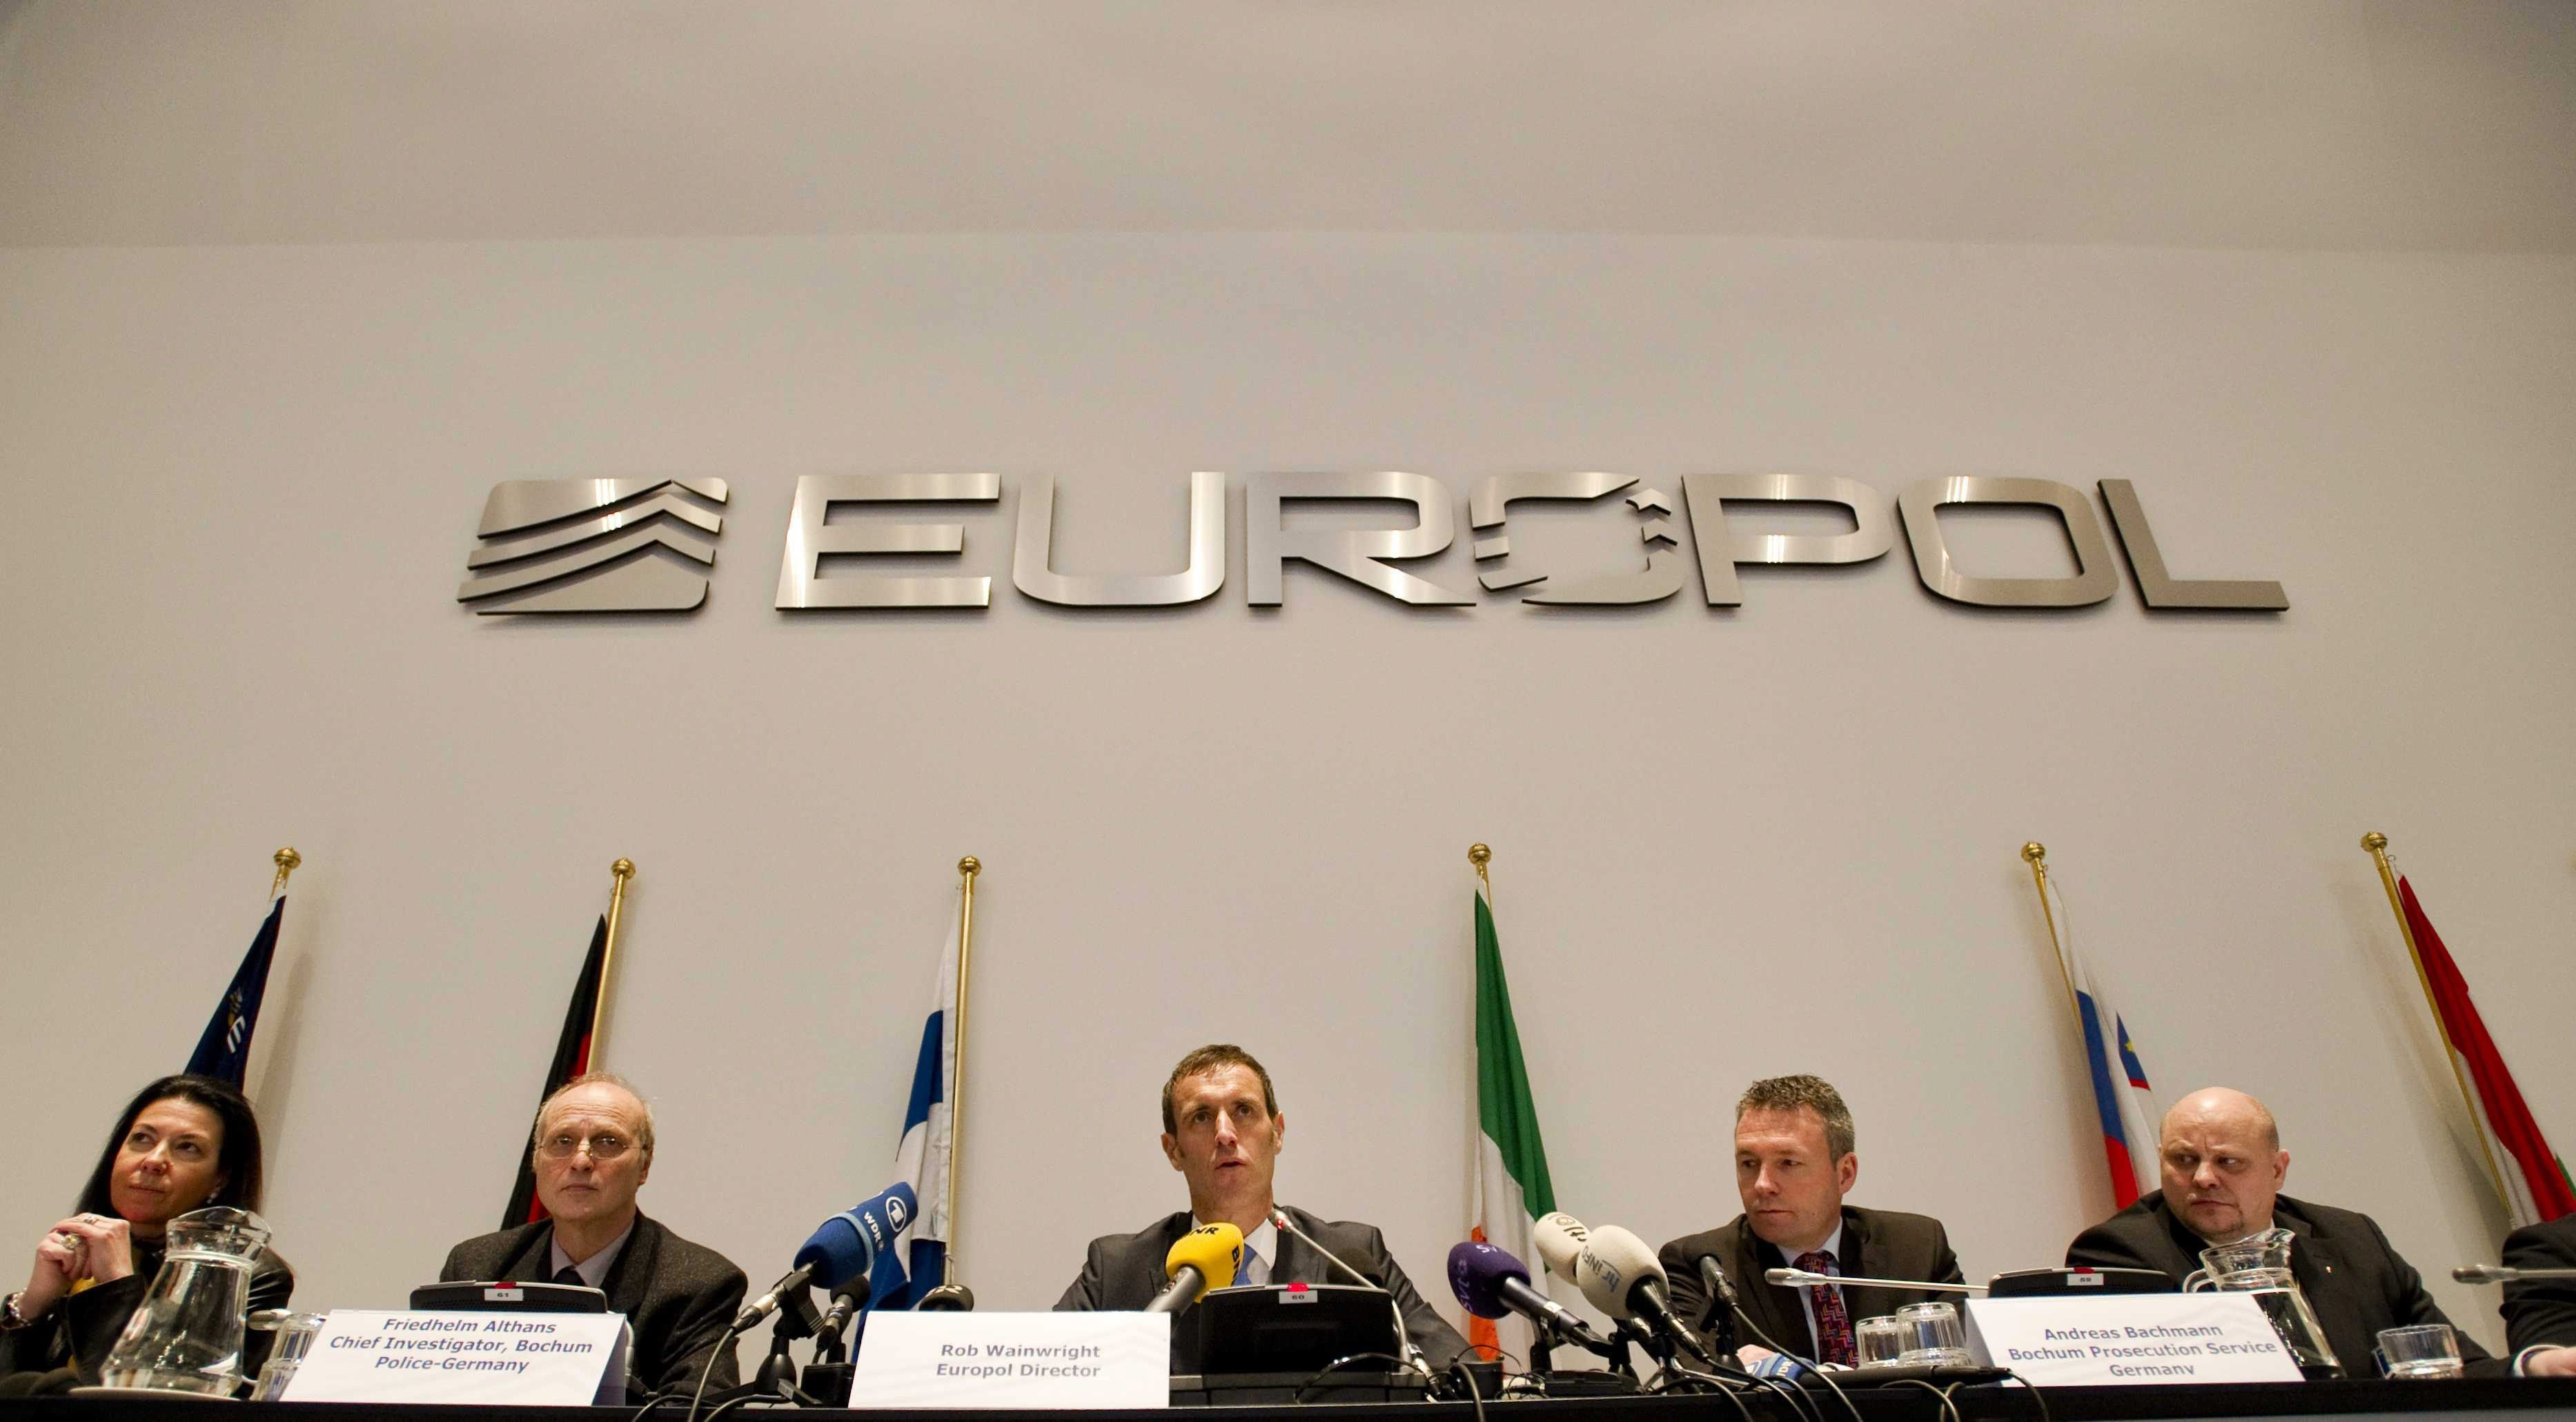 Cybercriminal network which stole €89.3 million dismantled - Europol